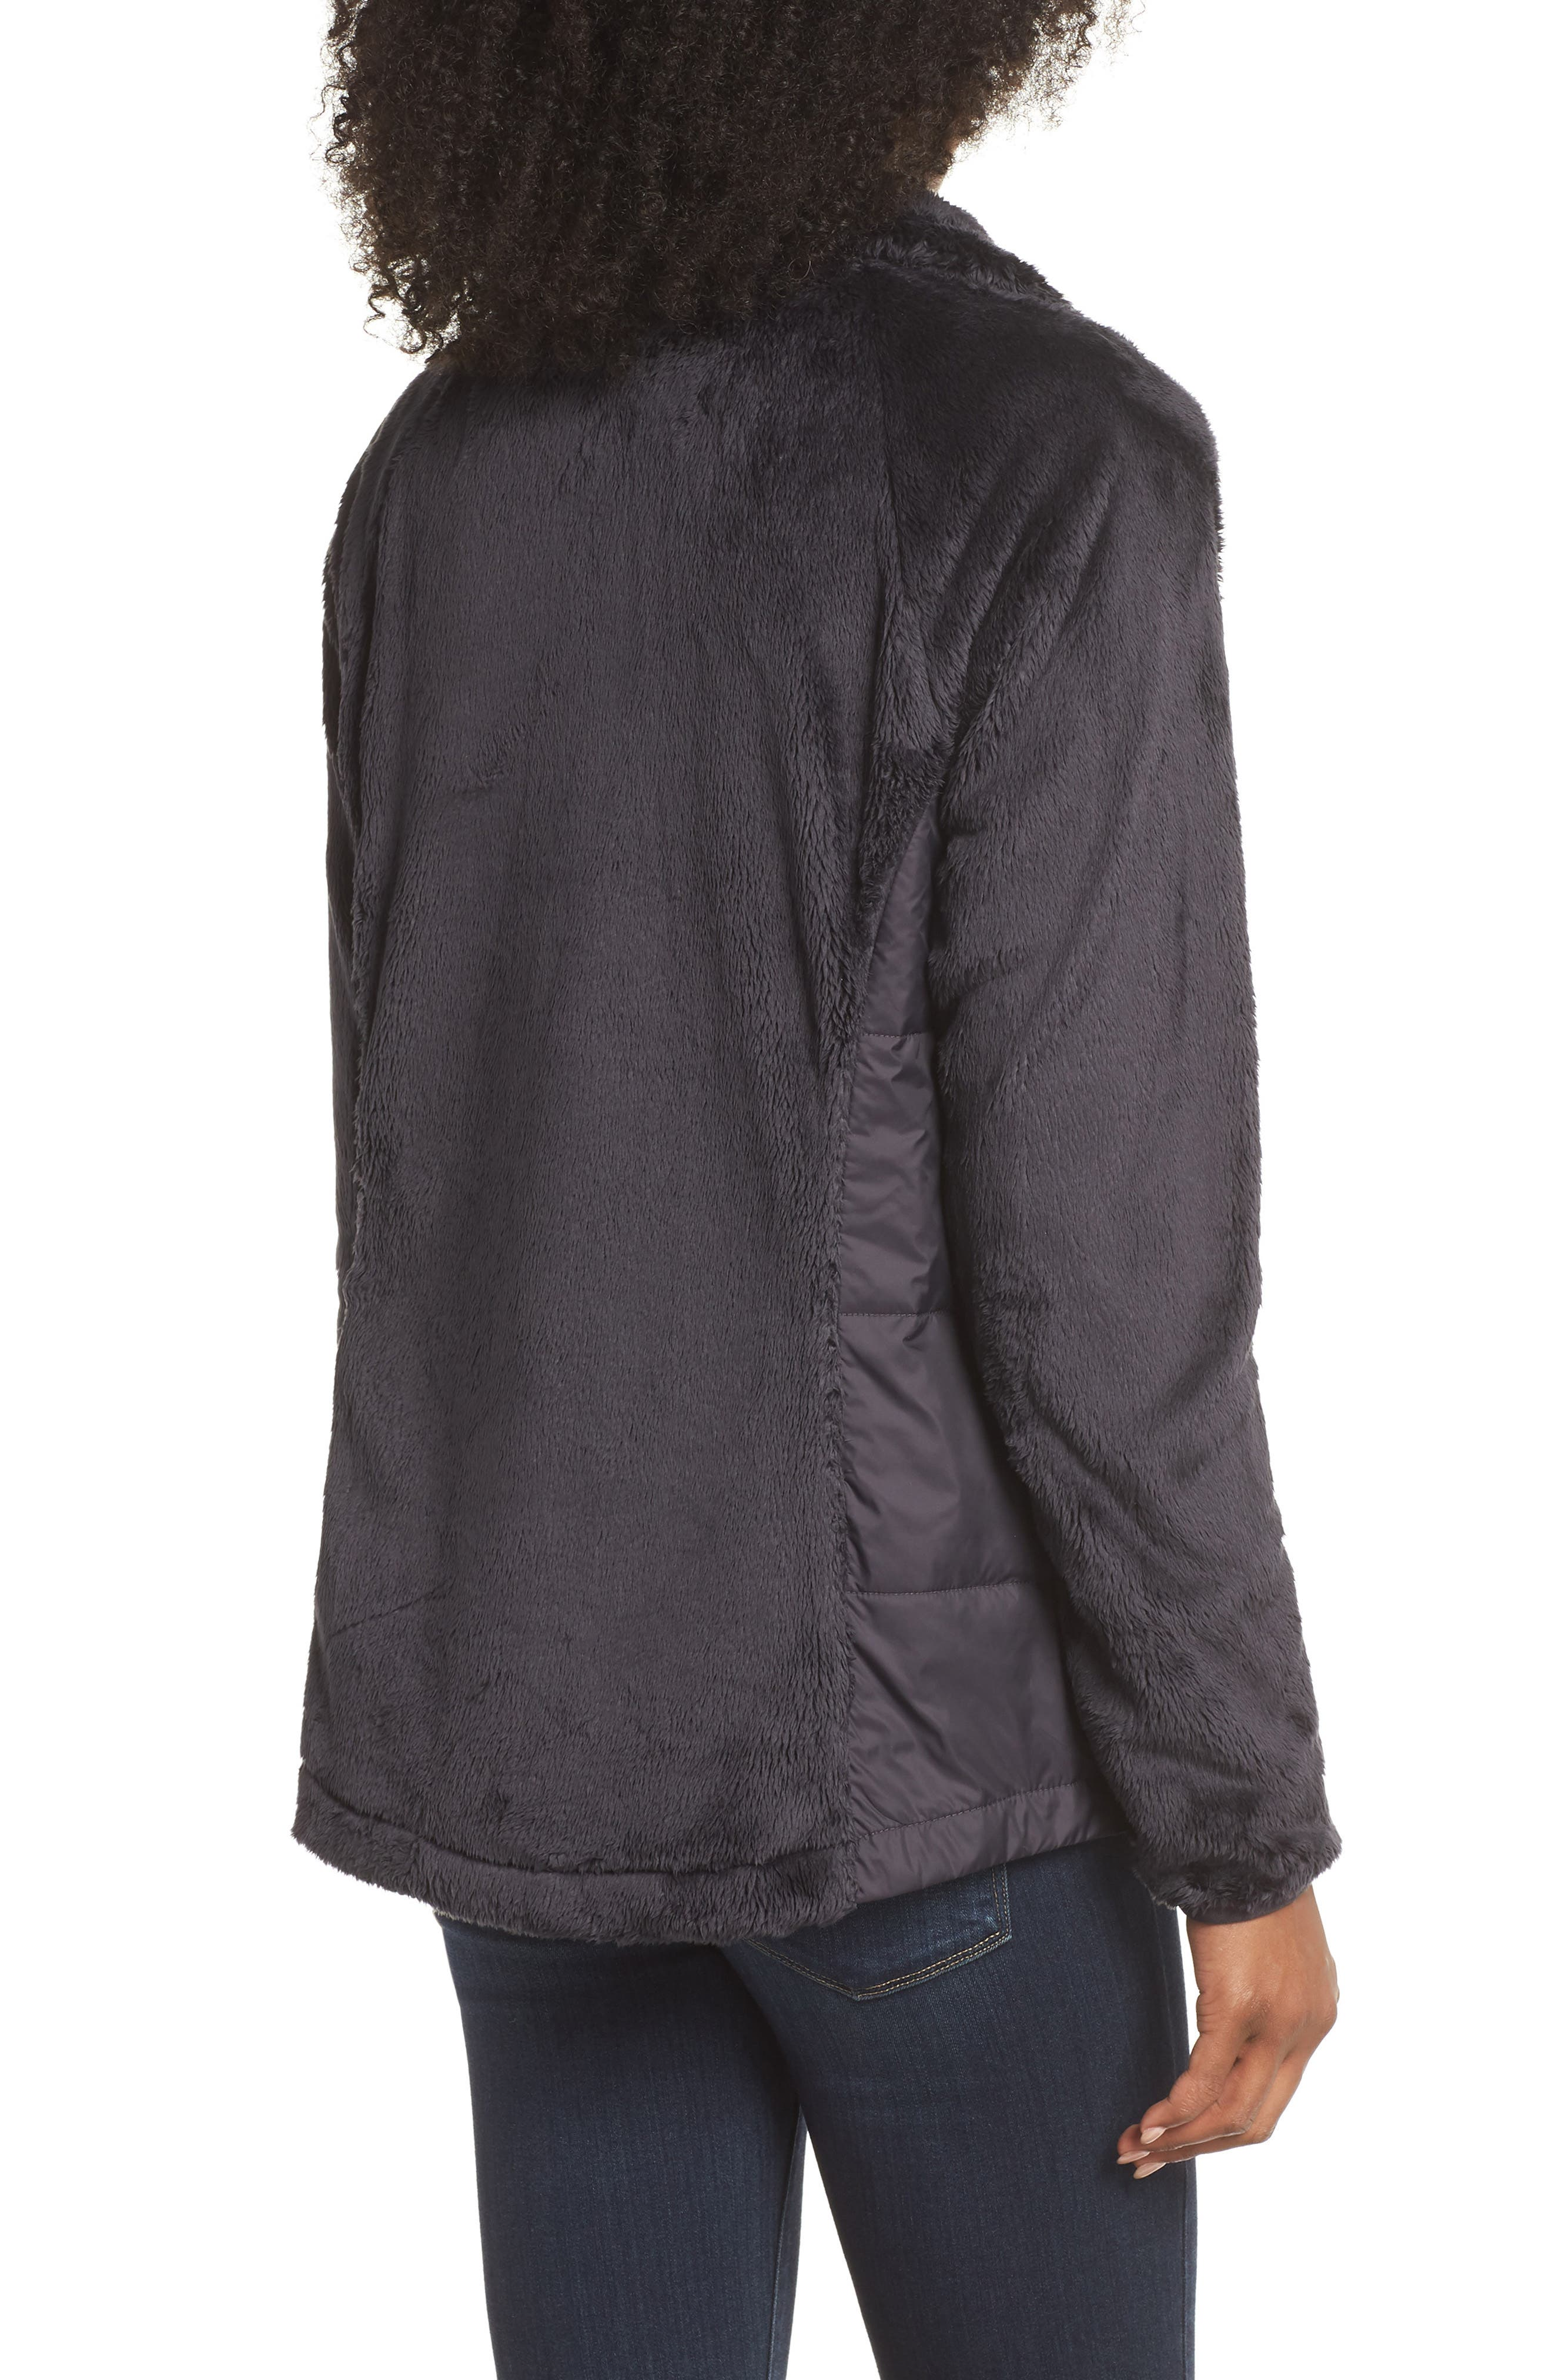 THE NORTH FACE, Osito Sport Hybrid Jacket, Alternate thumbnail 2, color, 001